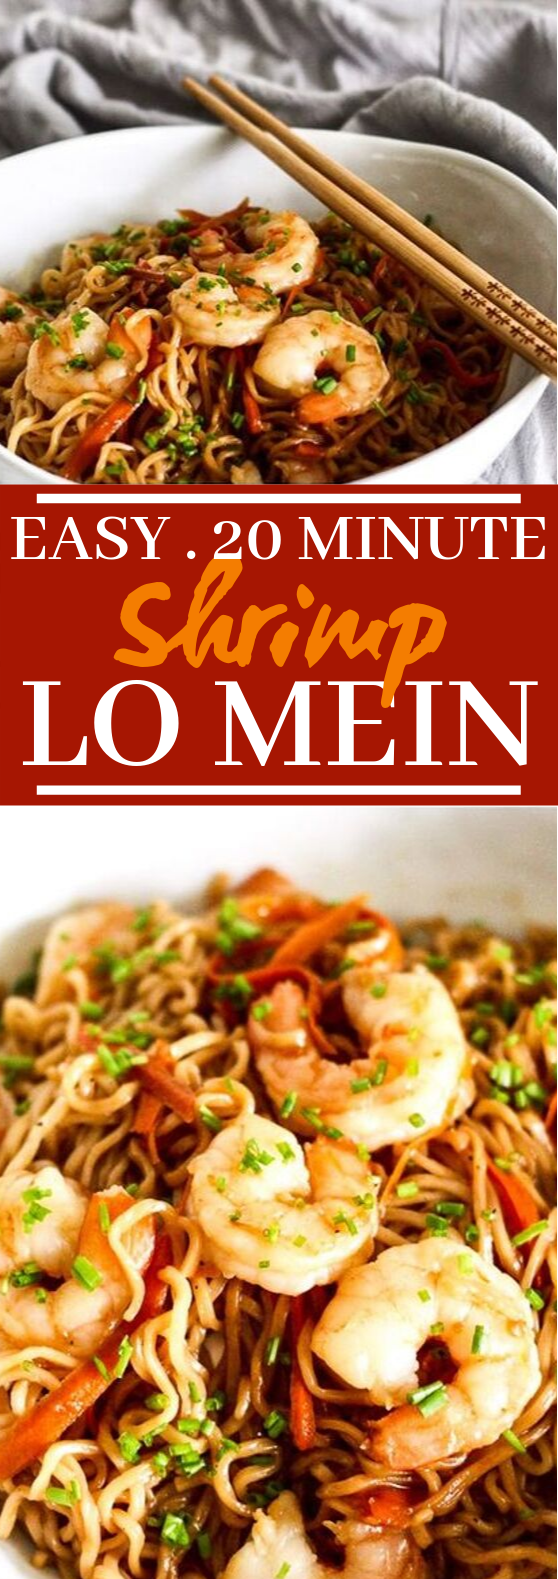 Easy Shrimp Lo Mein #dinner #shrimp